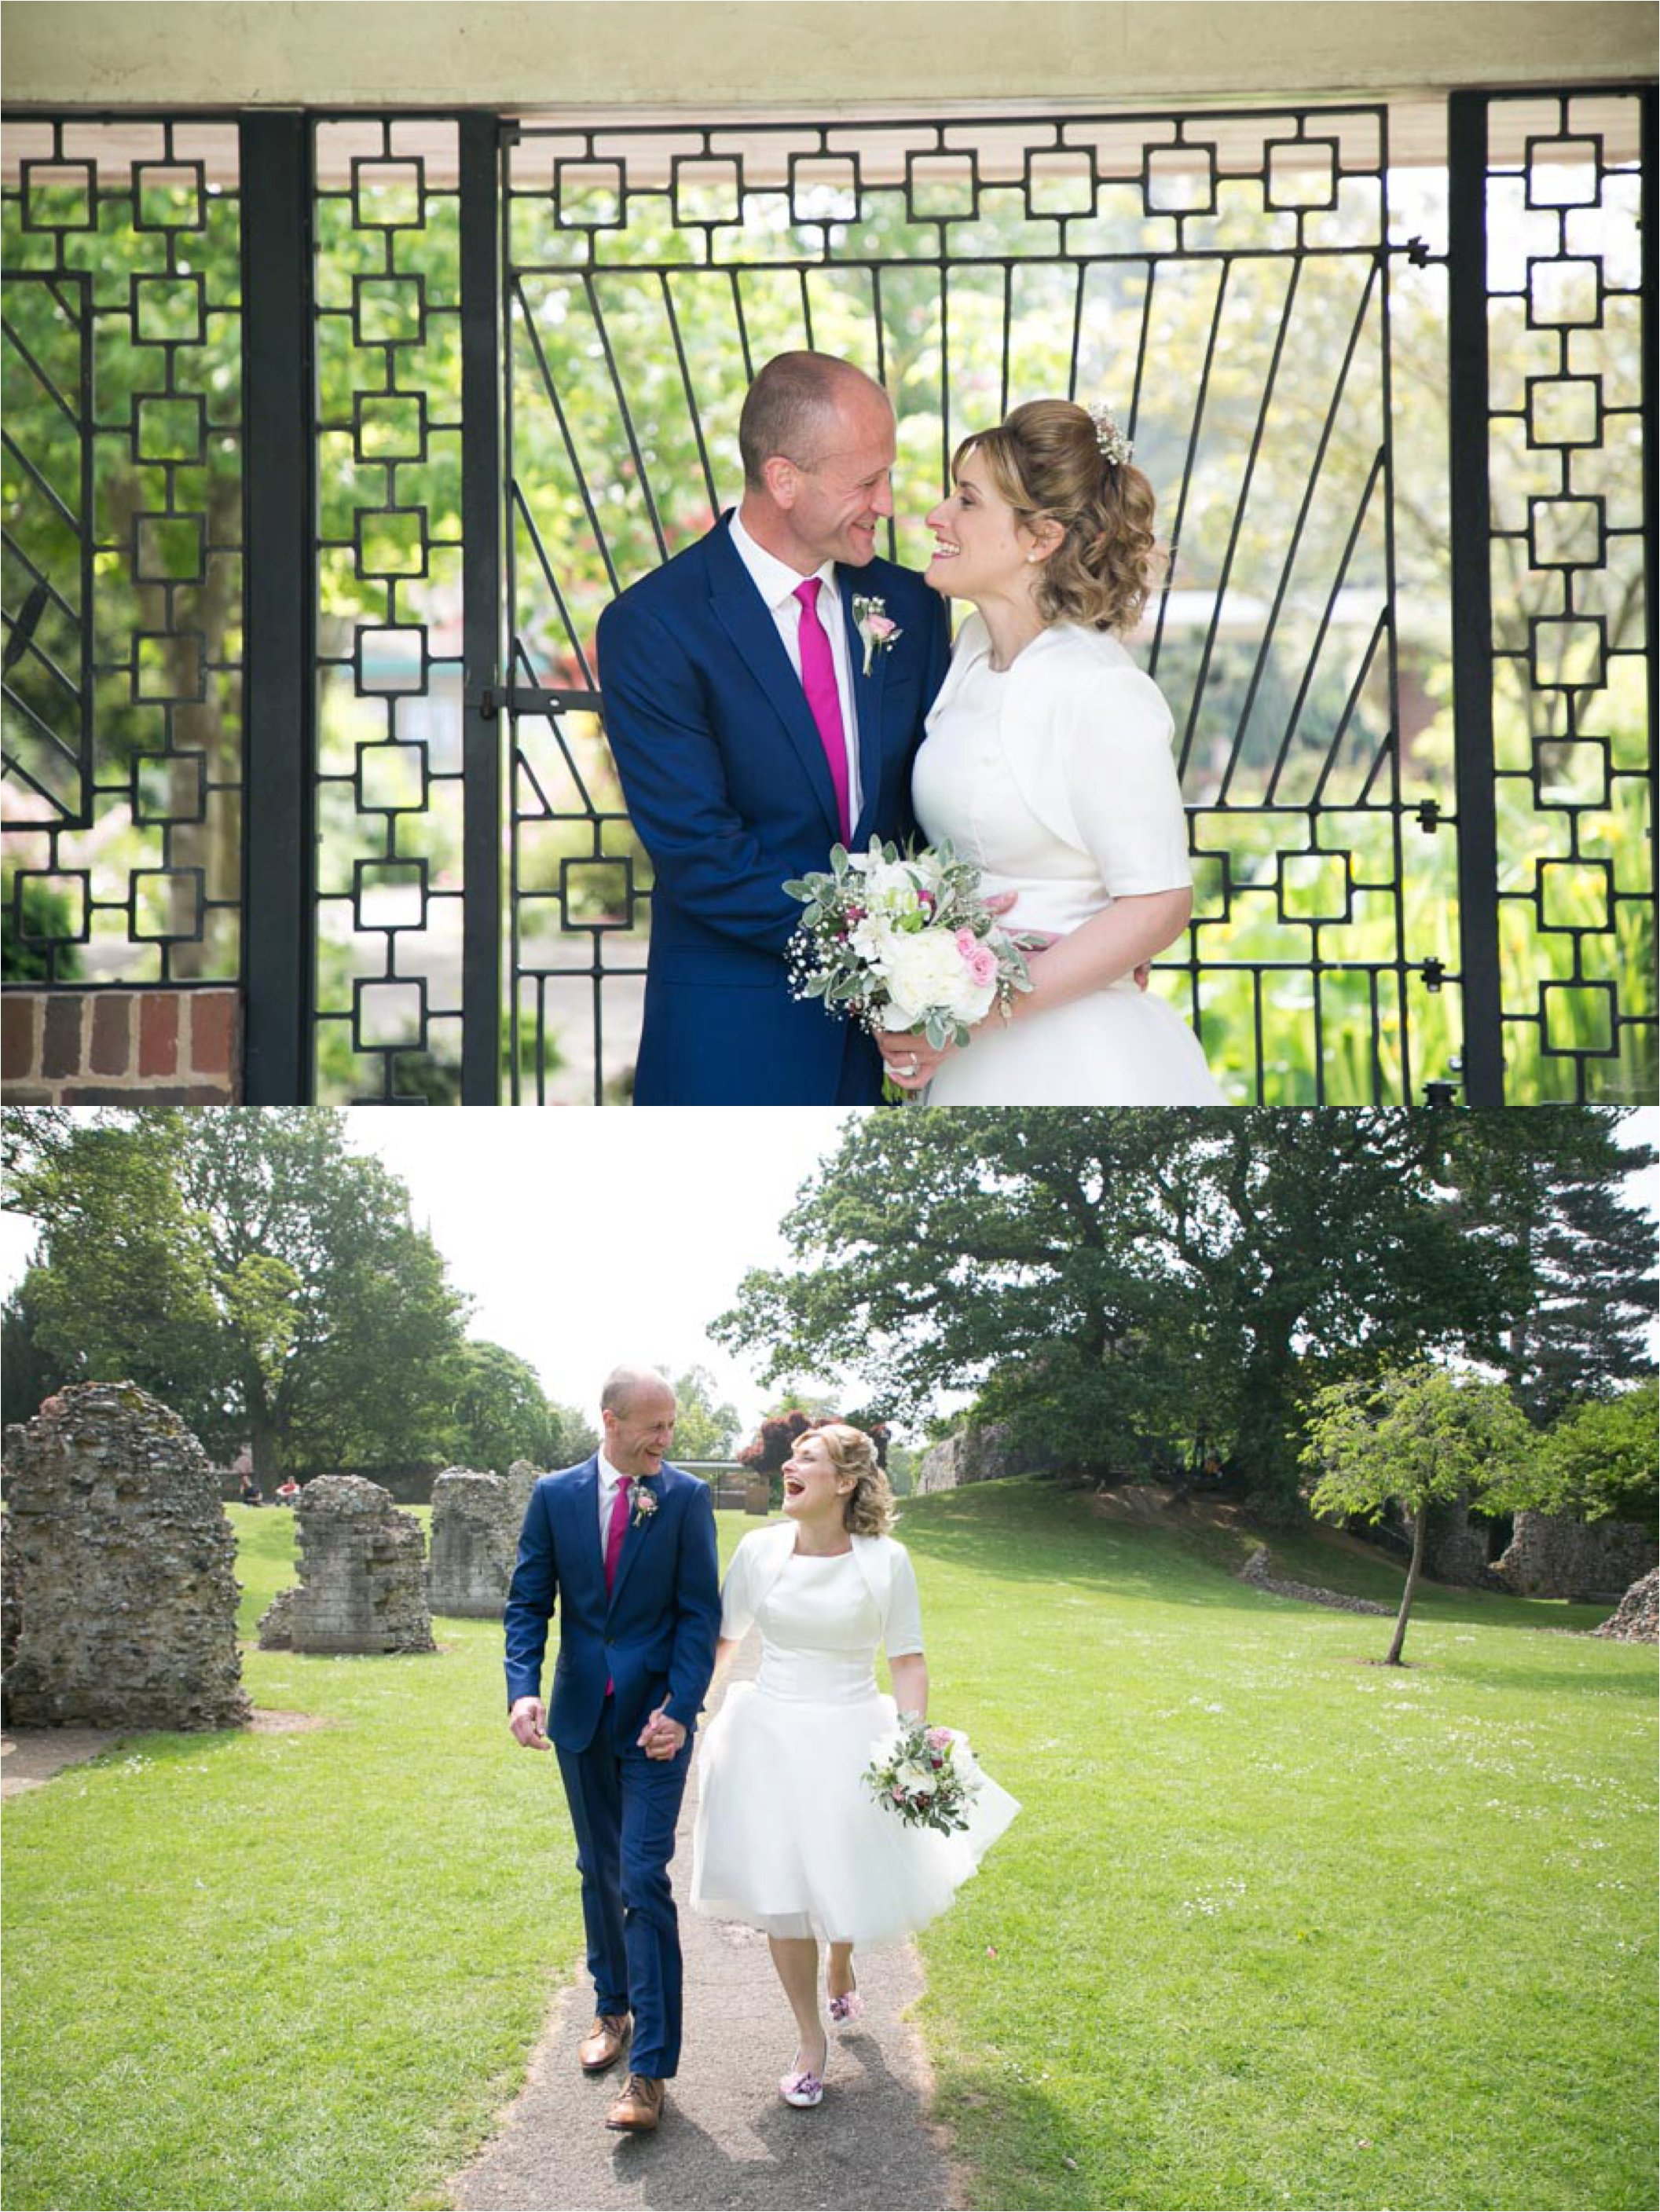 Abbey Gardens wedding photography Bury St Edmunds